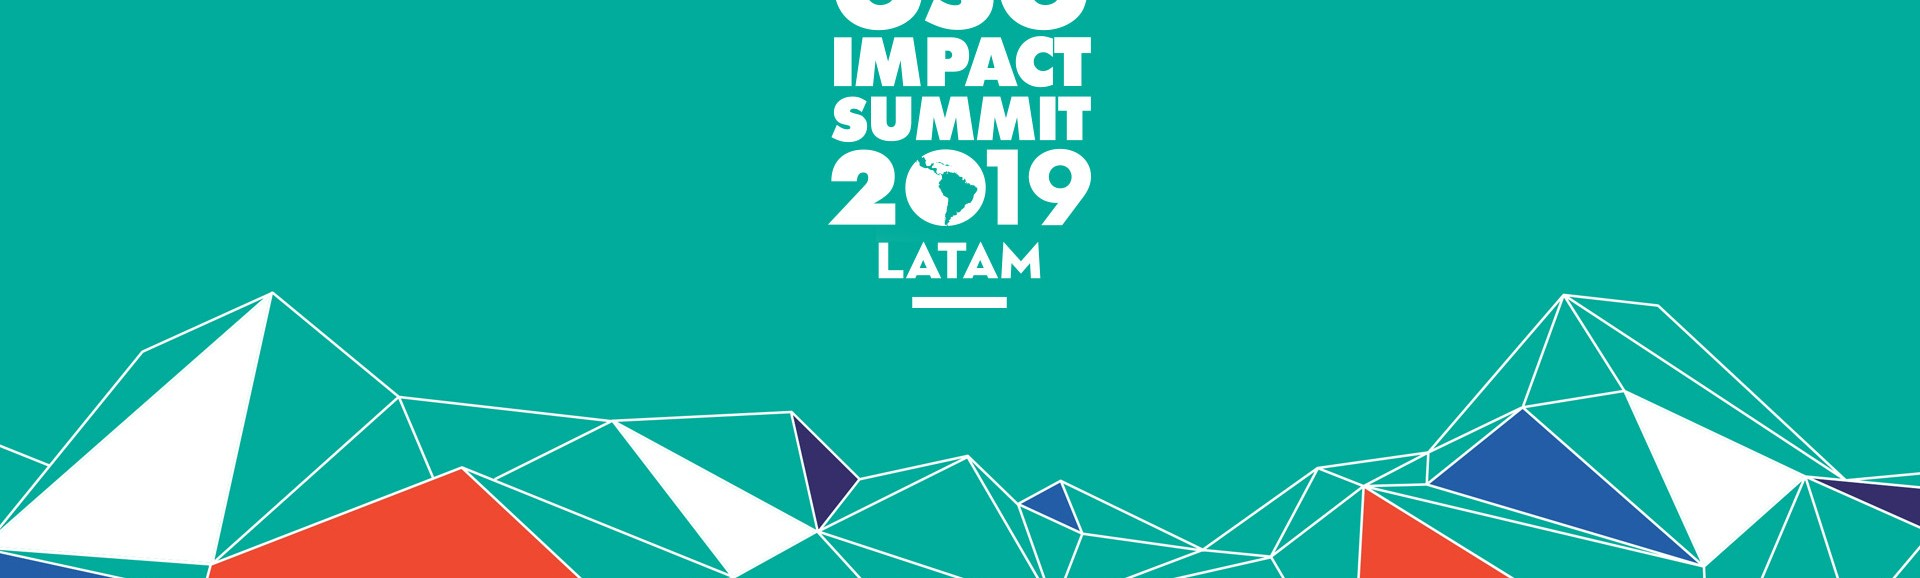 gsg_summit2019_banner_with_logo.jpg